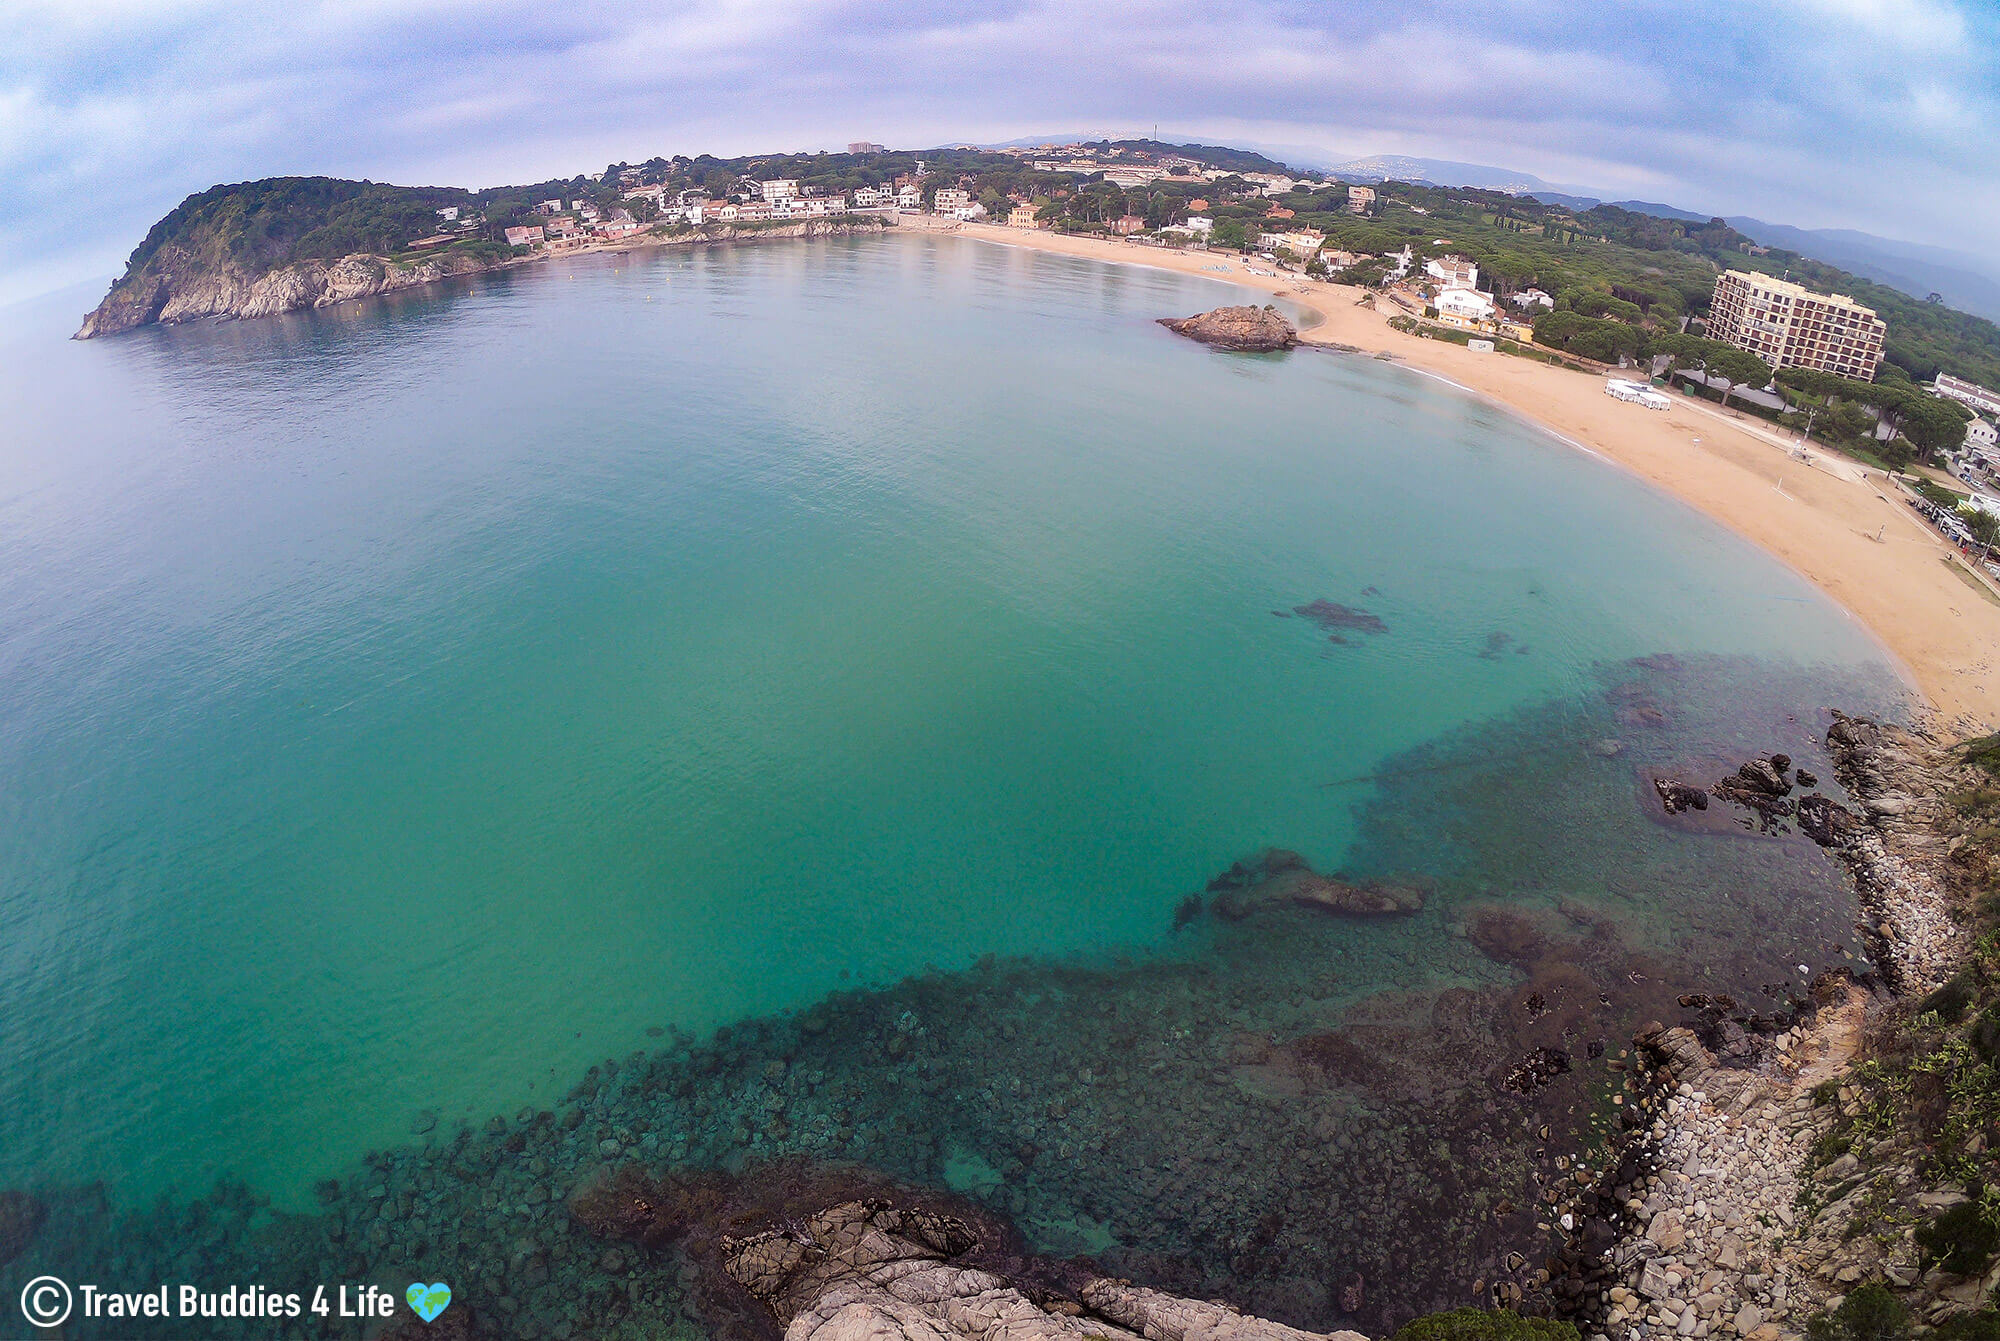 The Golden Sand And Azure Blue Waters Of Spain's Famous Costa Brava, Europe